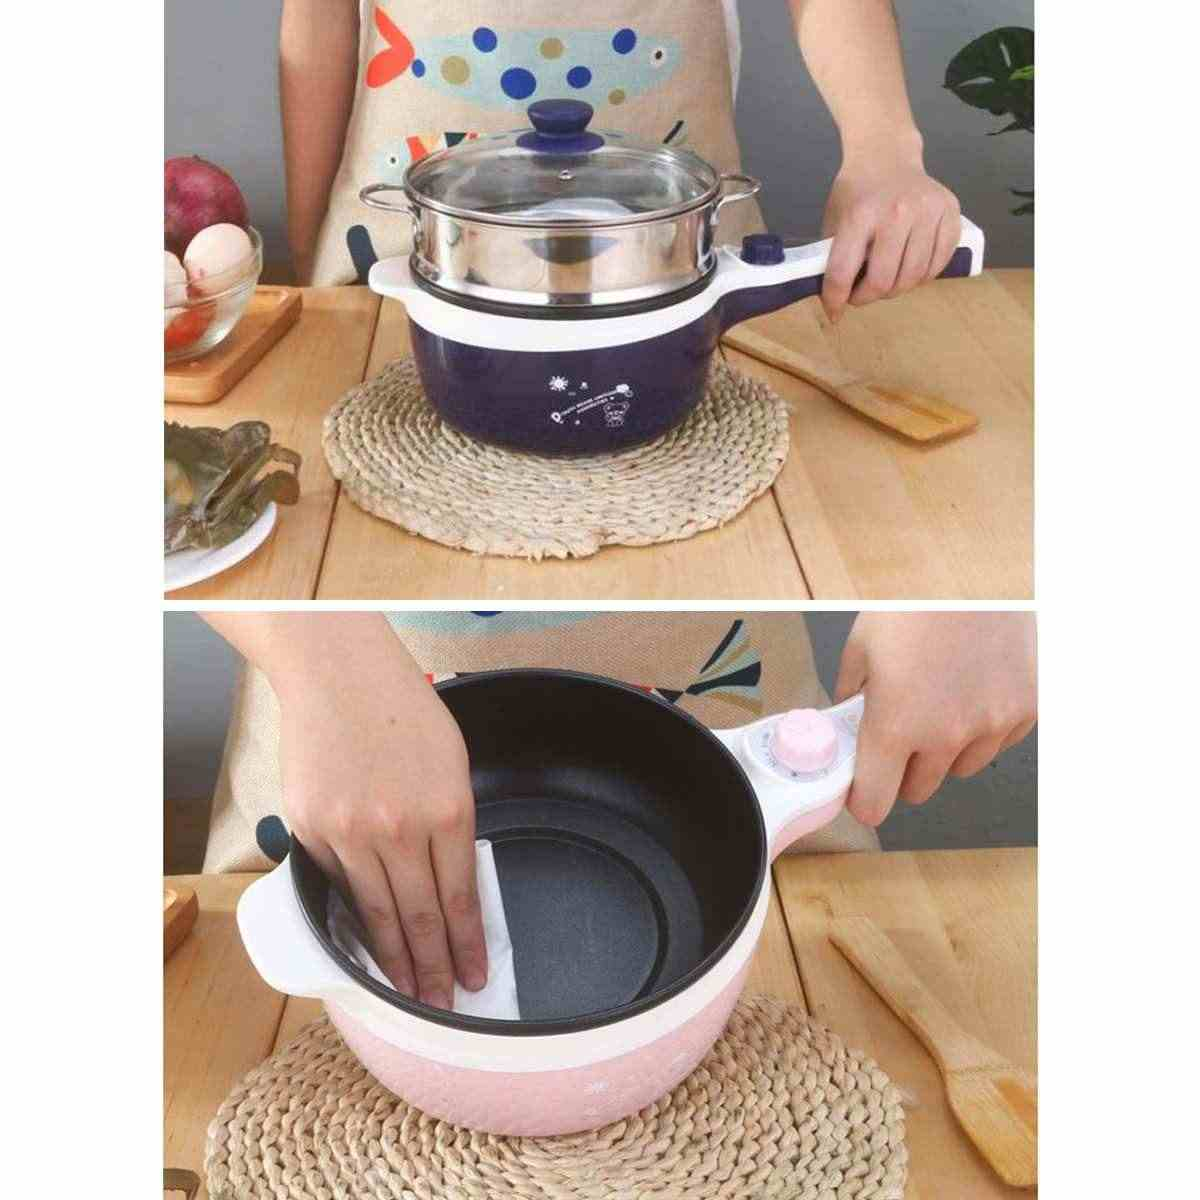 New 1.6L Electric Mini Rice Cooker MultiCookers Portable Rice Cooker 2 Layers Non-stick skillet Cooking pot Food Steamer+7 Gifts